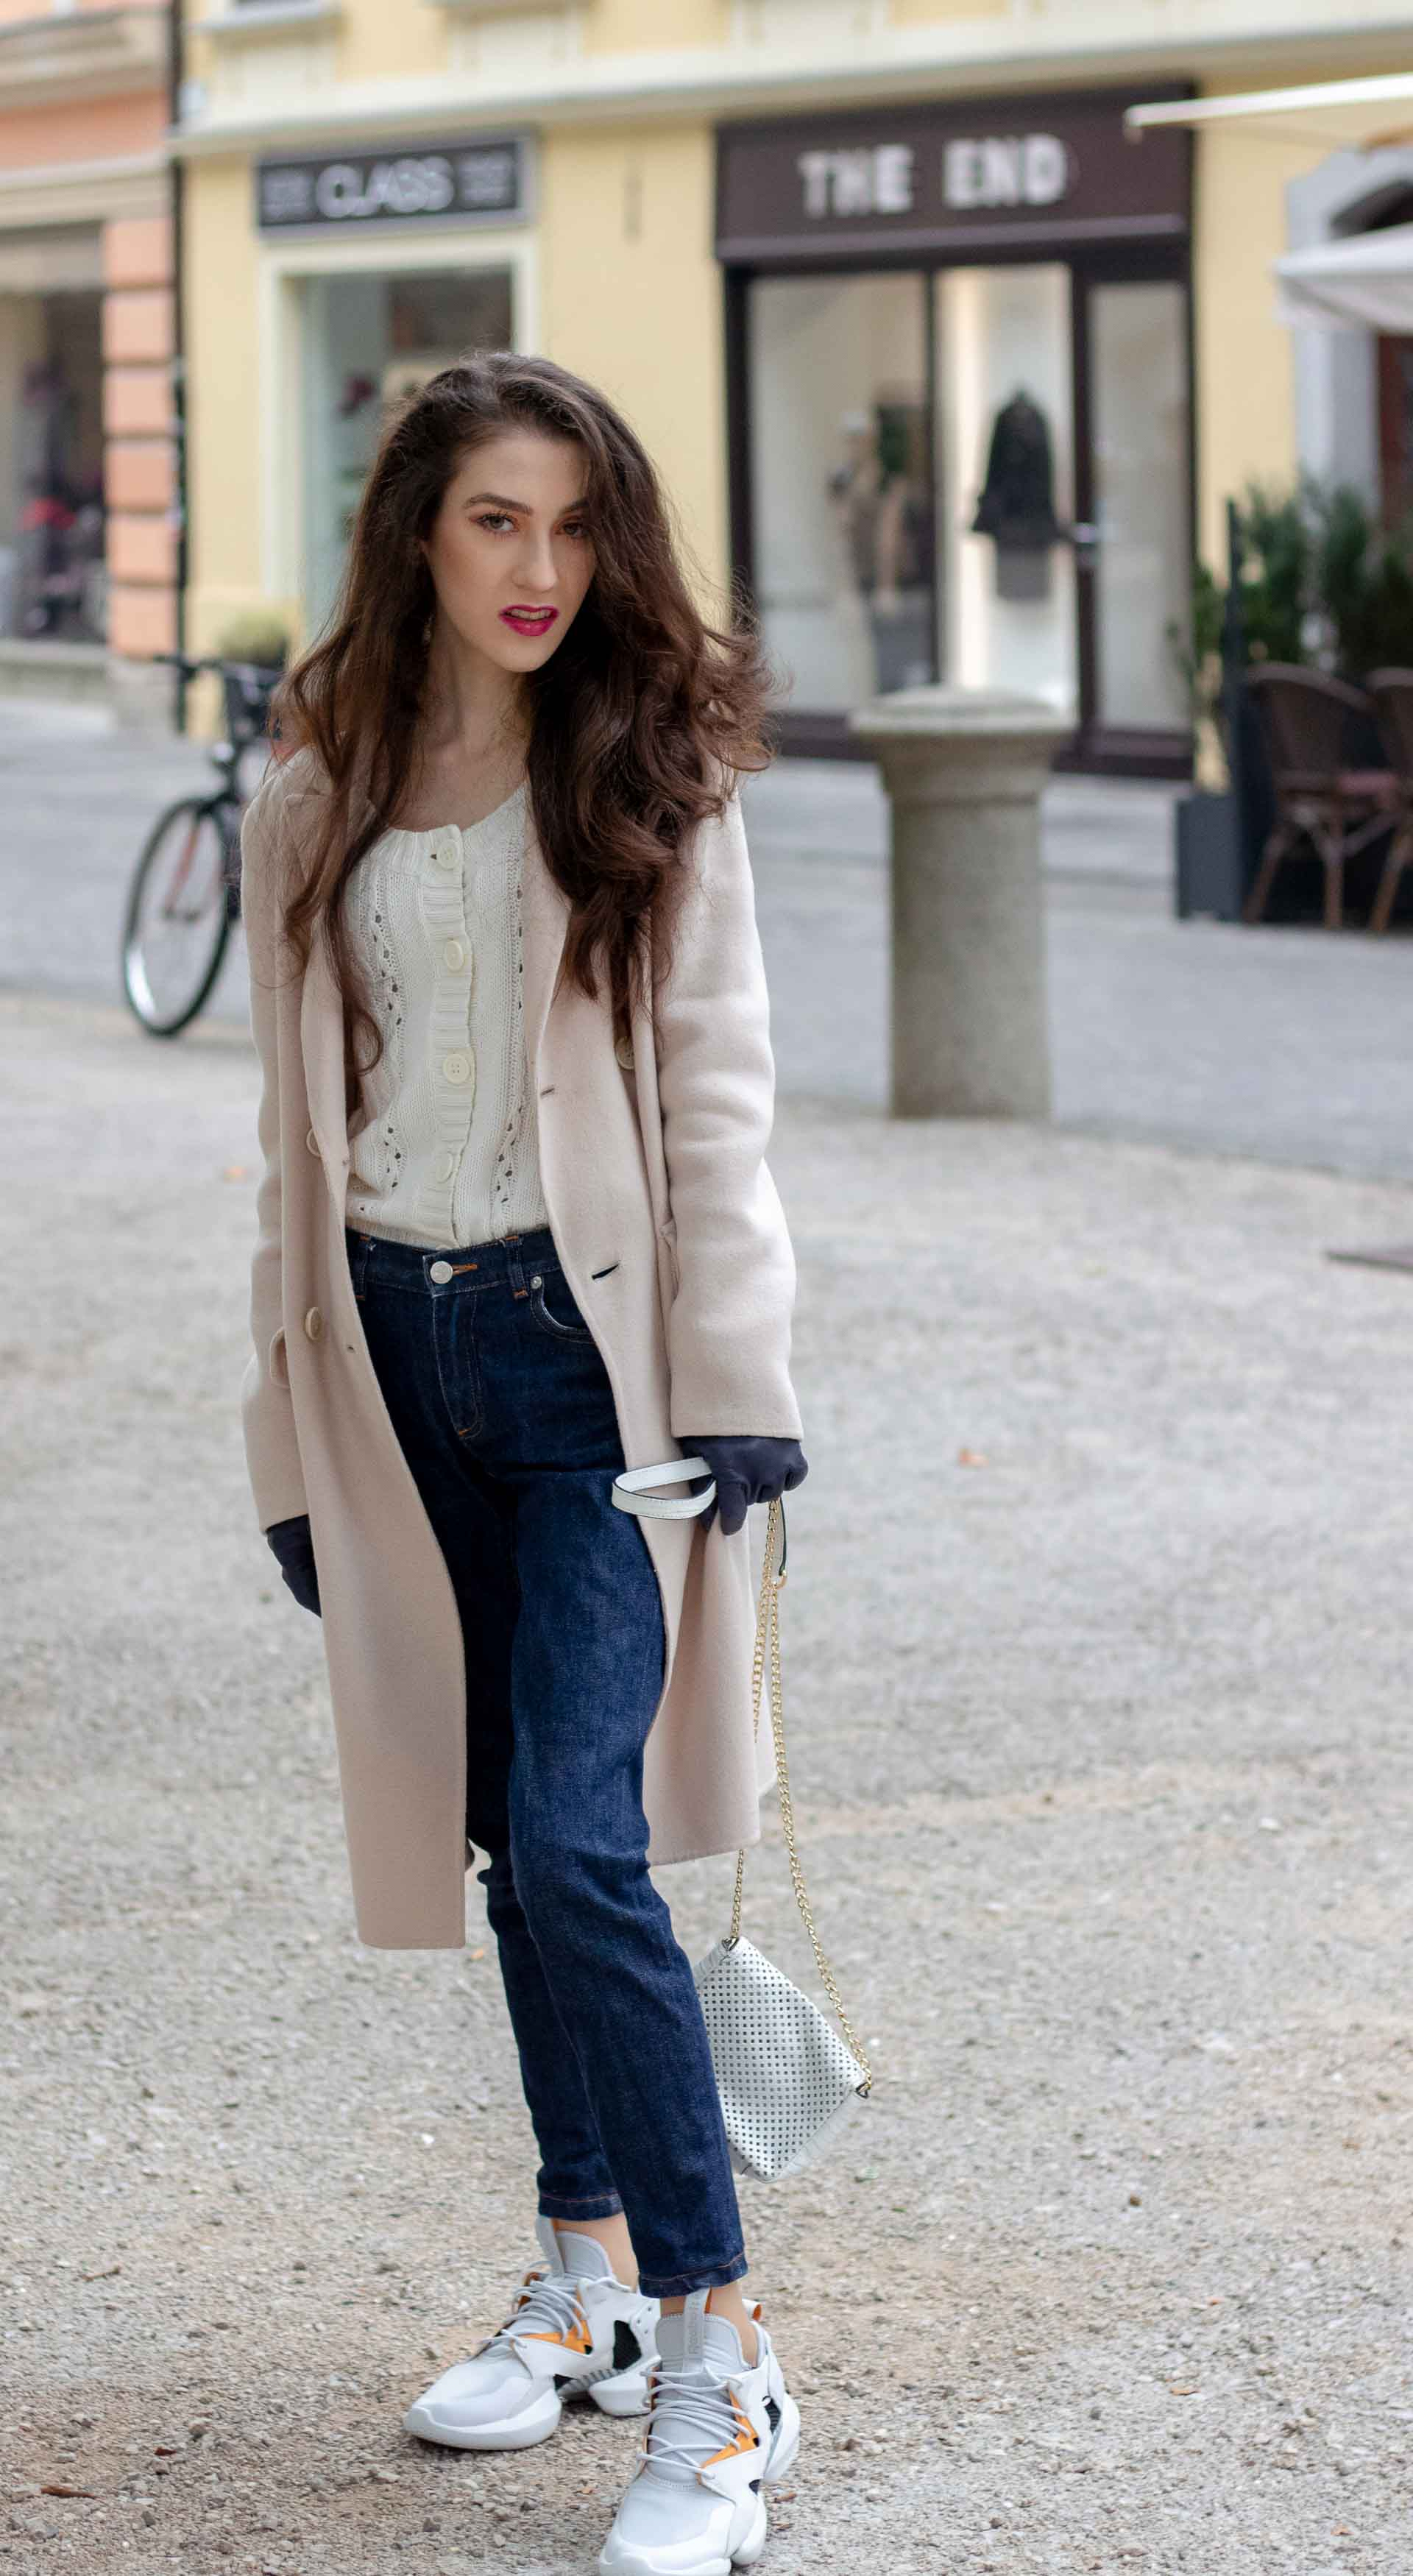 Beautiful Slovenian Fashion Blogger Veronika Lipar of Brunette from Wall wearing white Mango cardigan tucked into dark blue denim jeans from a.p.c., Weekend Max Mara coat, Reebok instapump sneakers in autumn